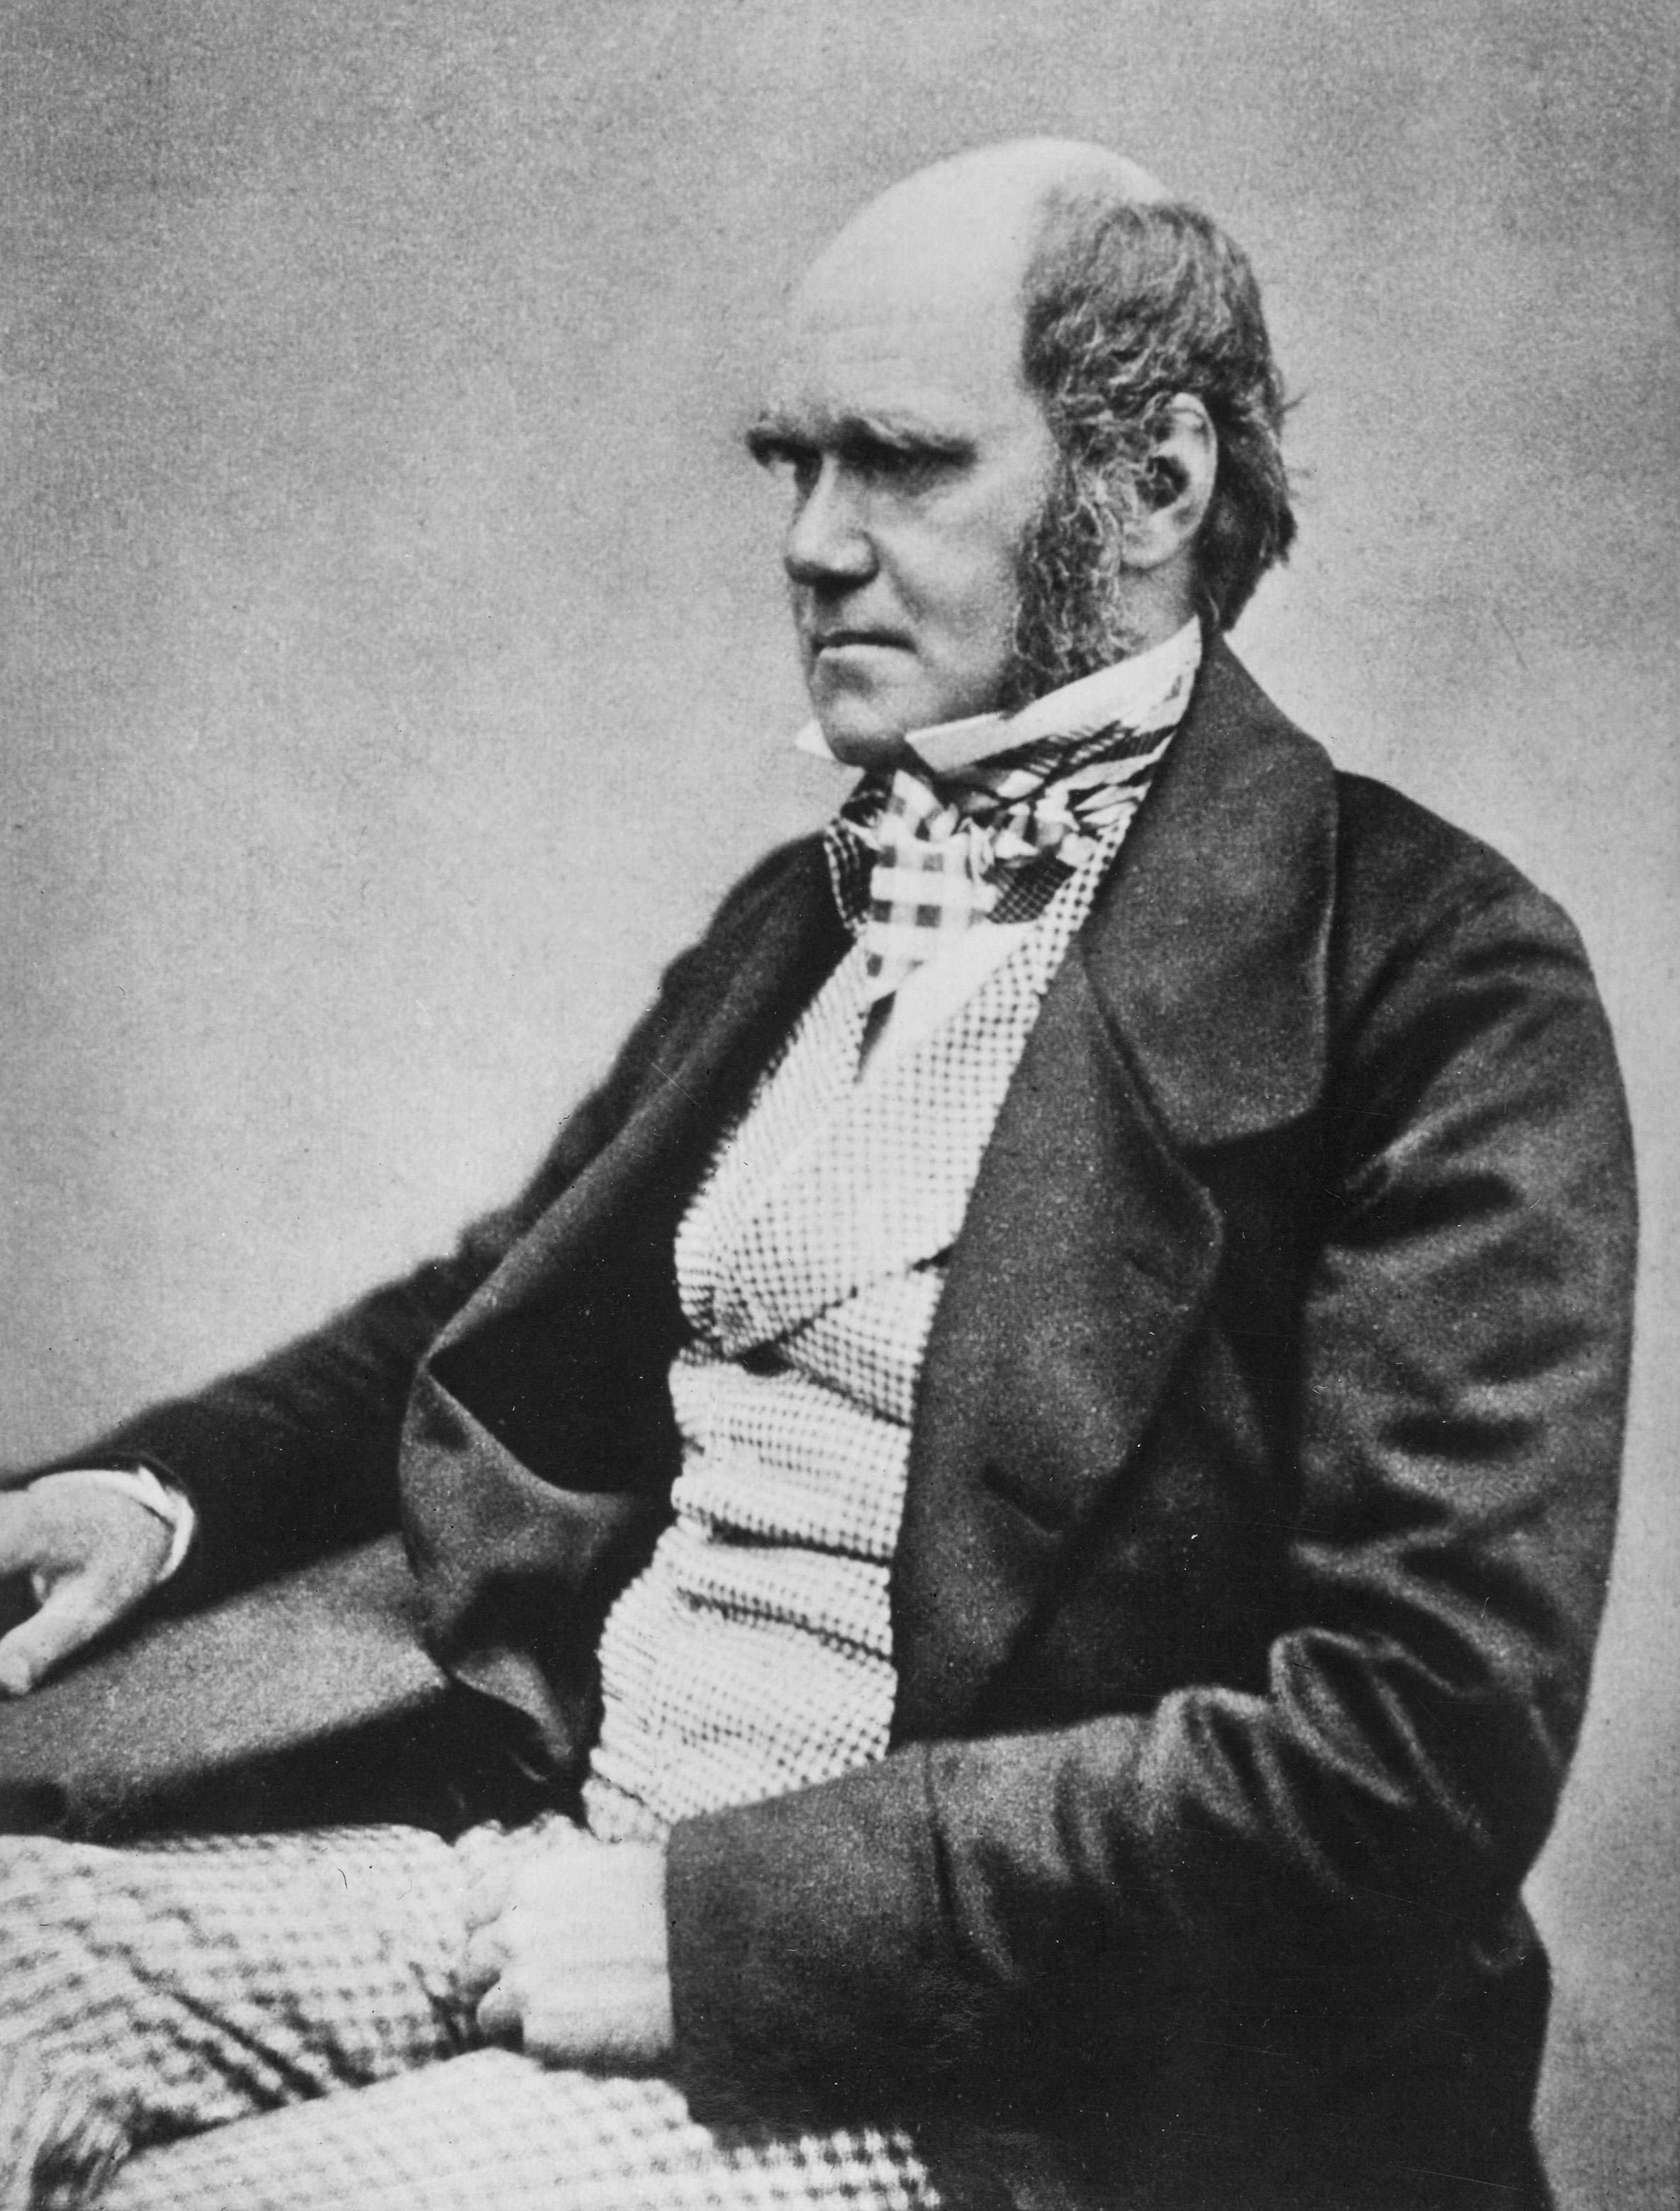 Charles Darwin around the time of publishing On the Origin of Species. Image from WikimediaCommons.